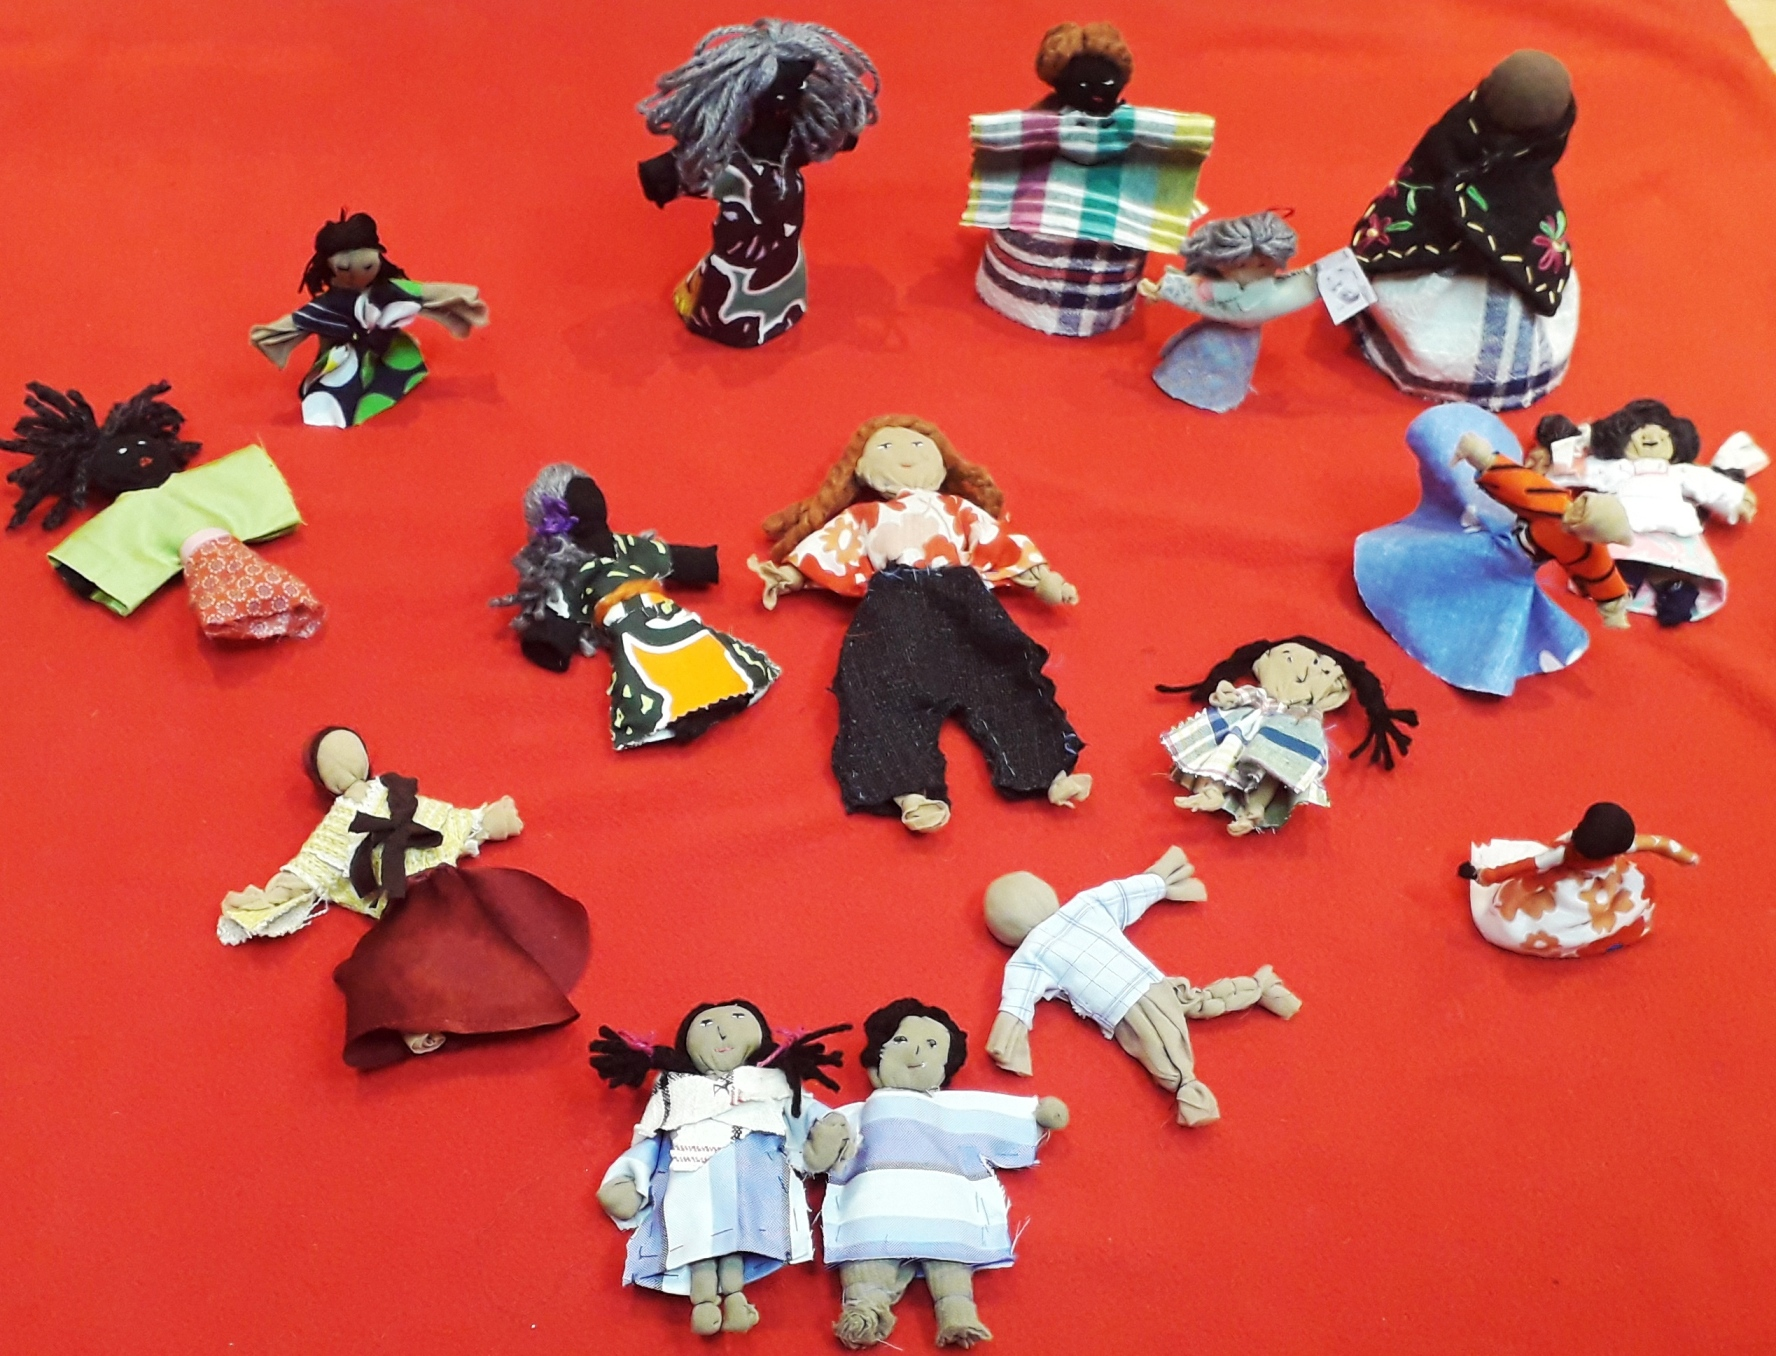 Arpillera dolls made by participants during the workshop facilitated by Roberta Bacic. (Photo: Jimena Pardo)